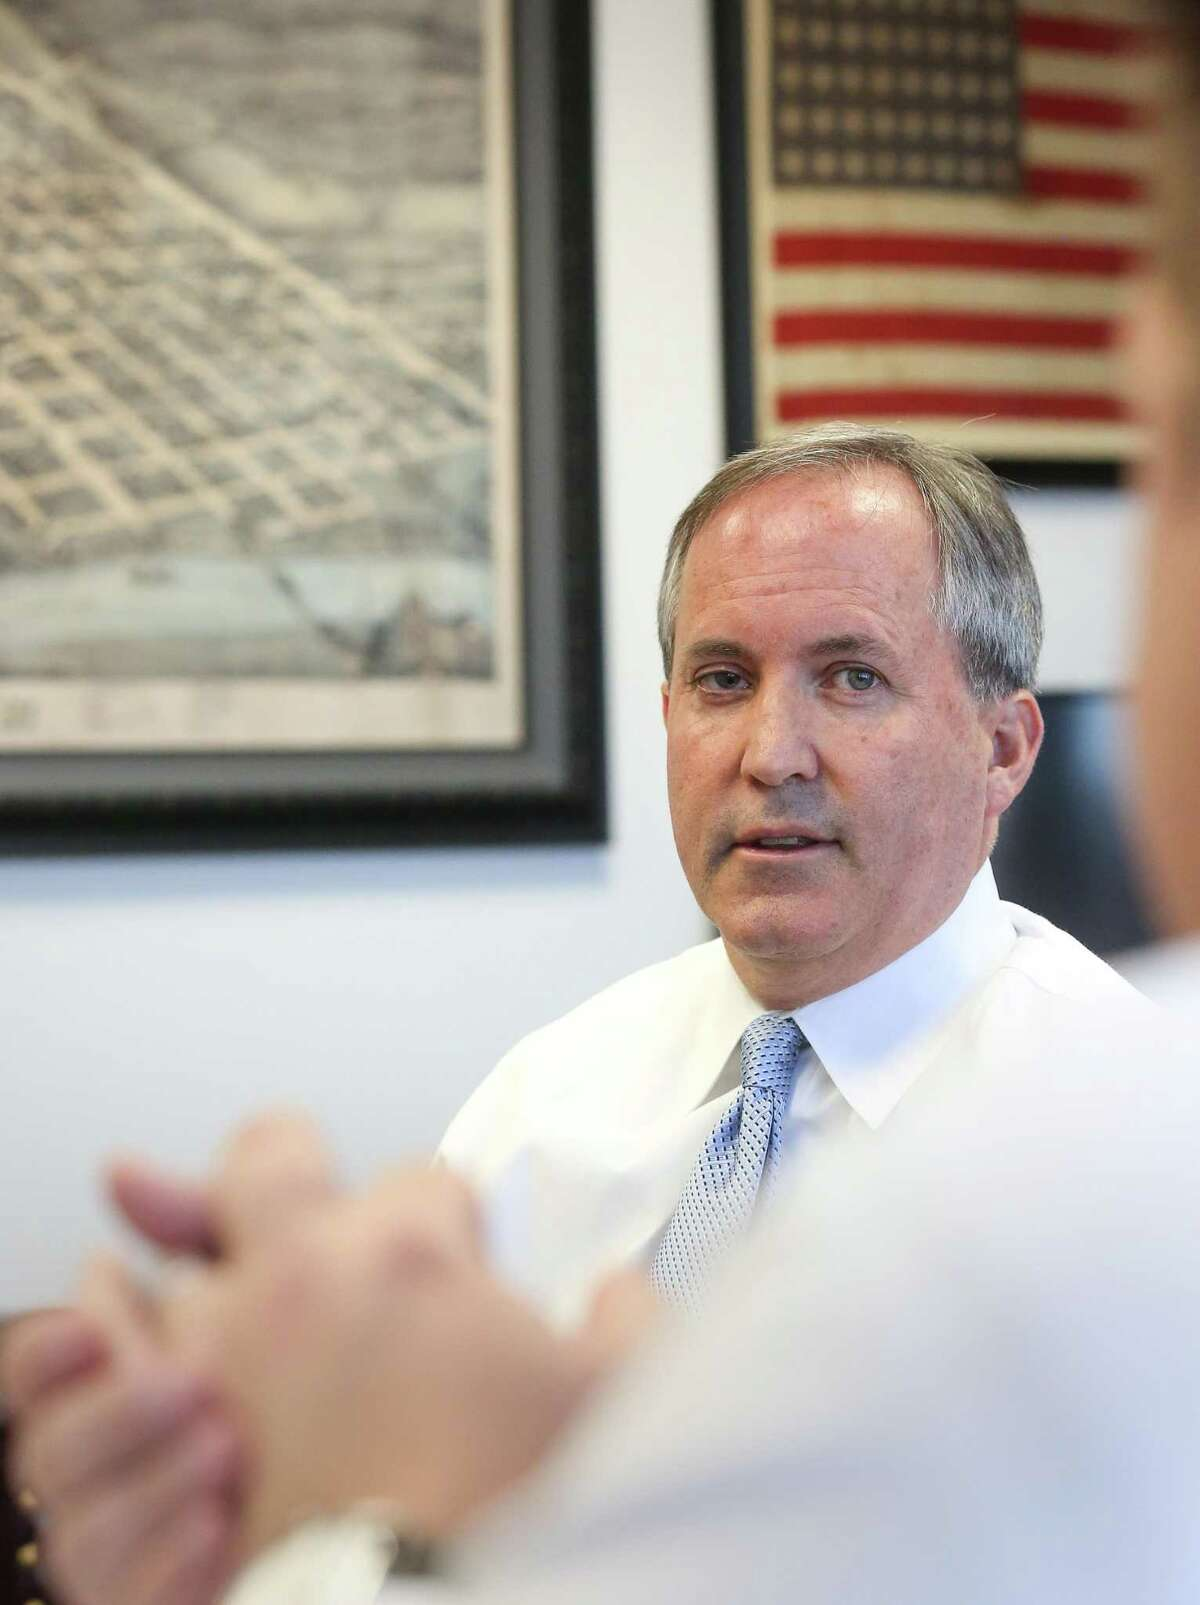 The judge who decided Collin County was too political for Attorney General Ken Paxton to have a fair criminal trial lost his ability to oversee the case in Harris County after the embattled Republican refused to sign off on rudimentary paperwork, the 5th Court of Appeals ruled Tuesday.